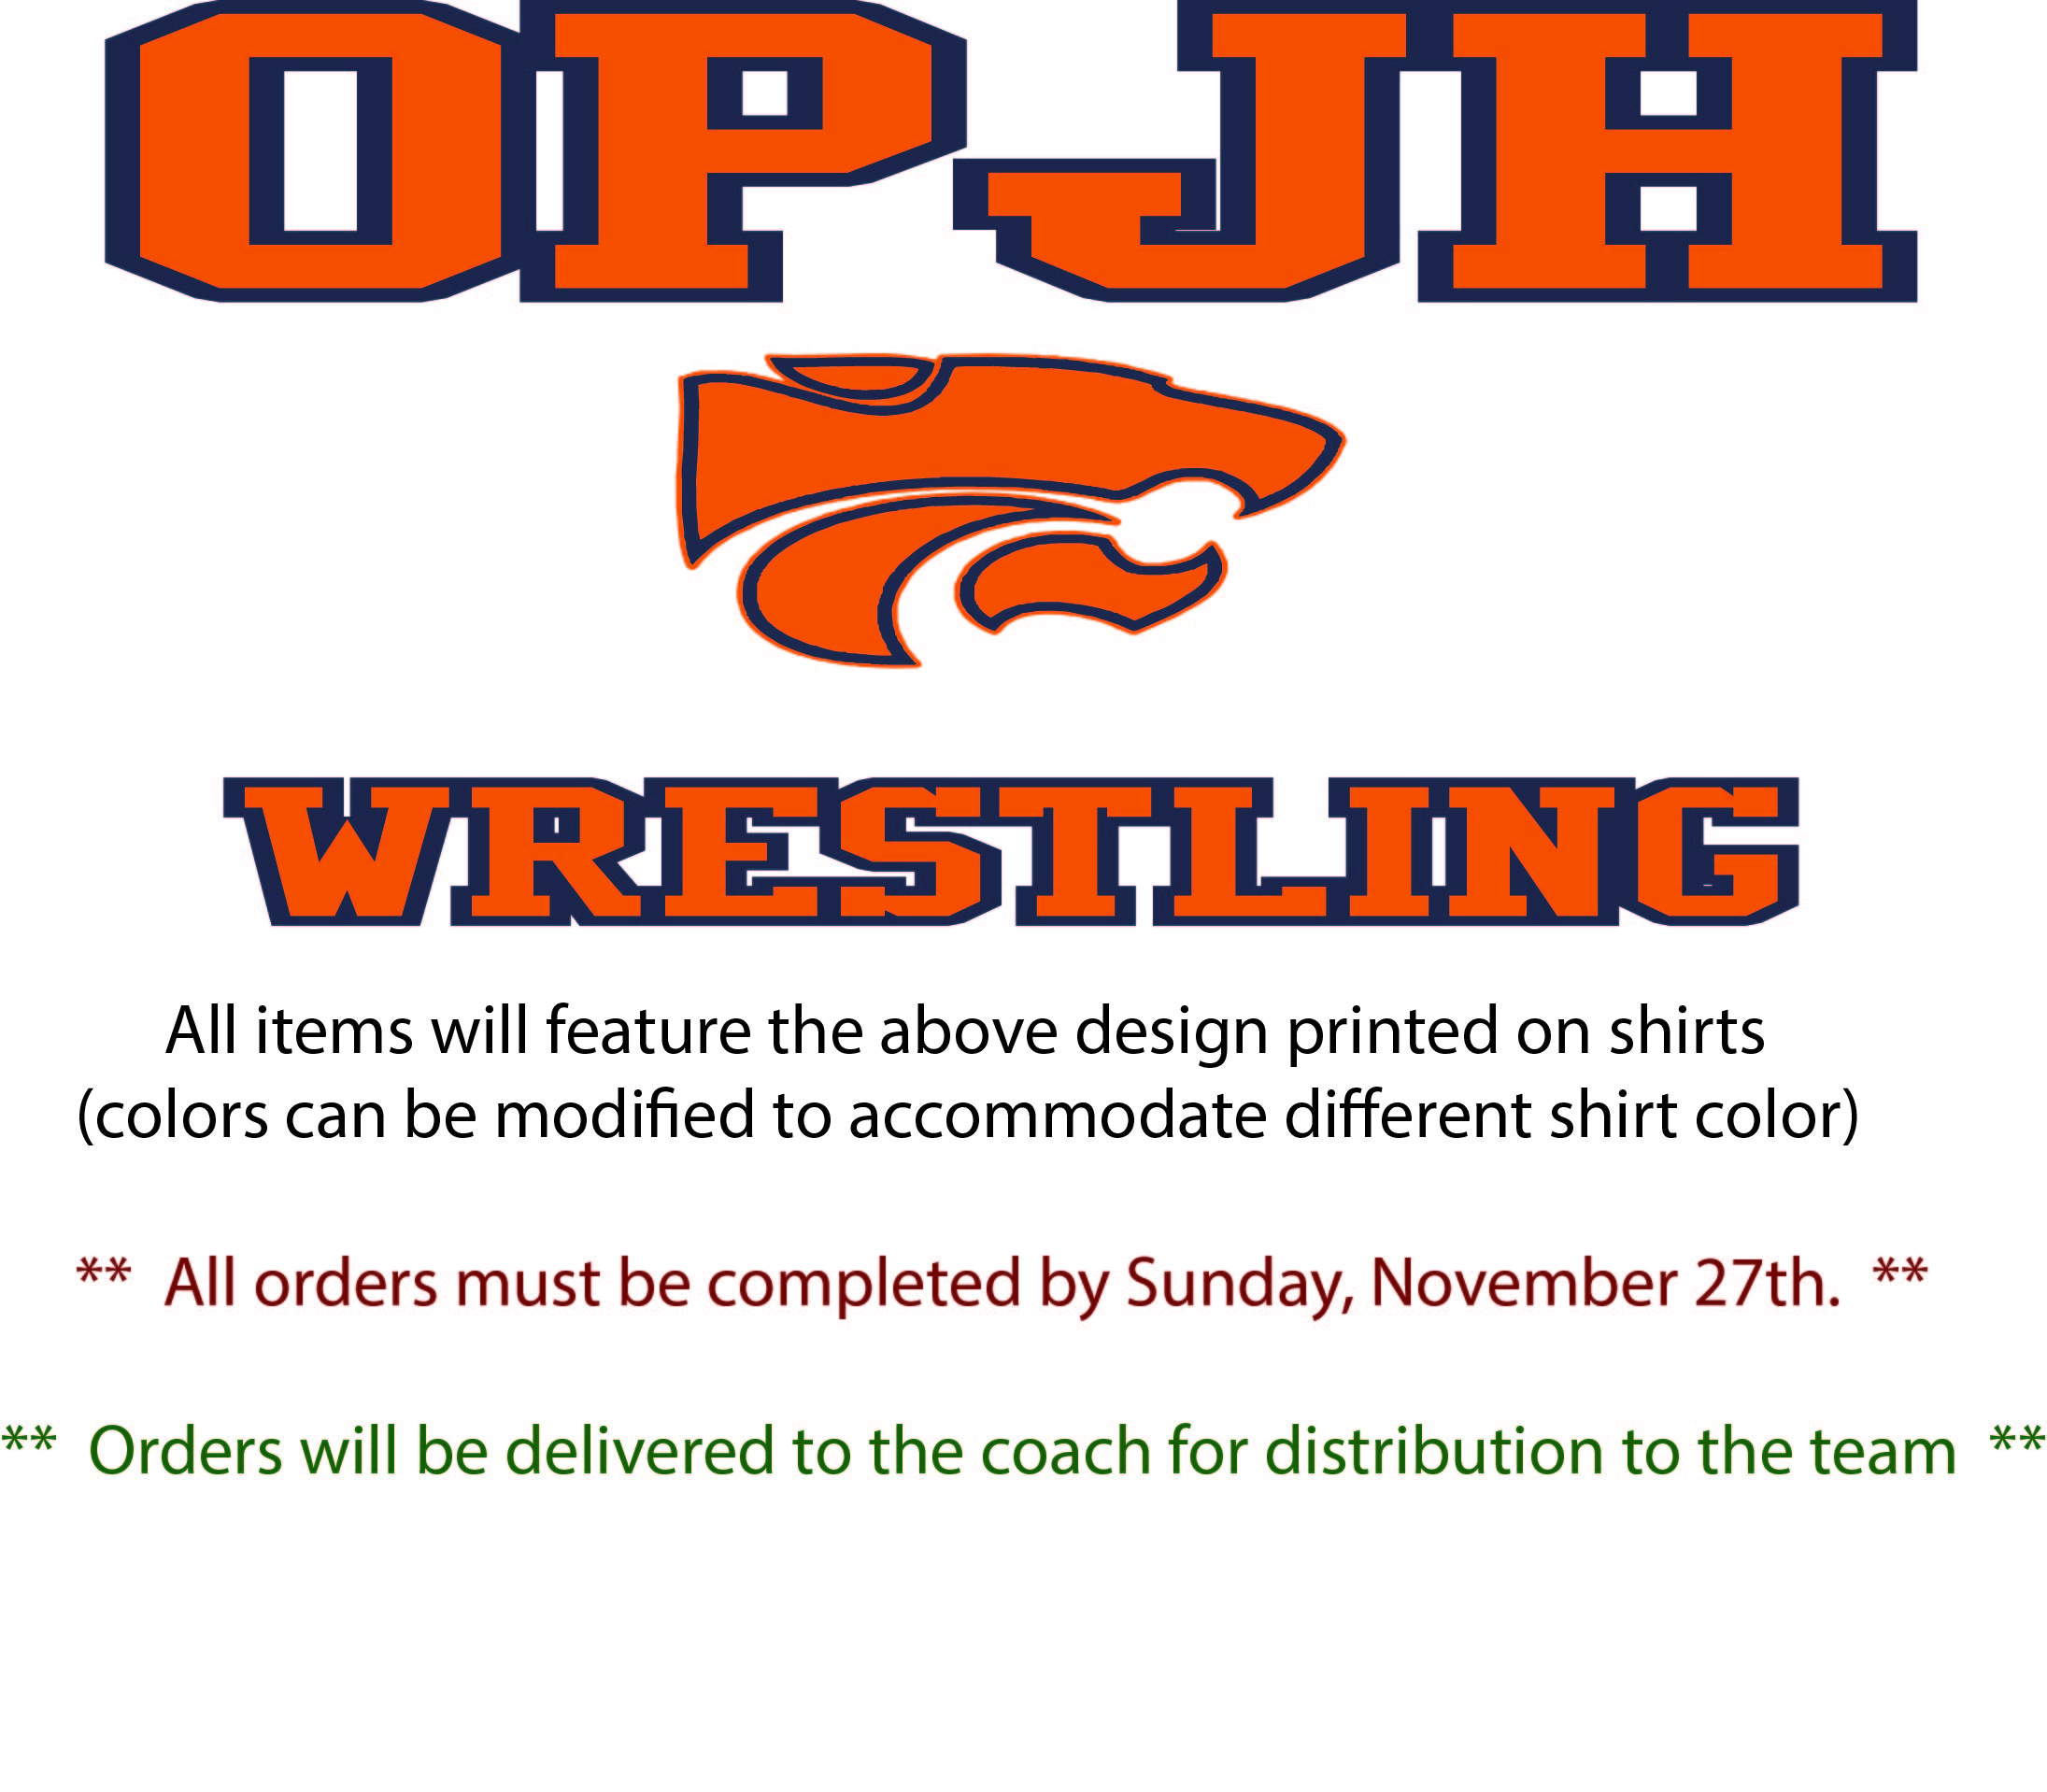 opjh-wrestline-web-site-header.jpg